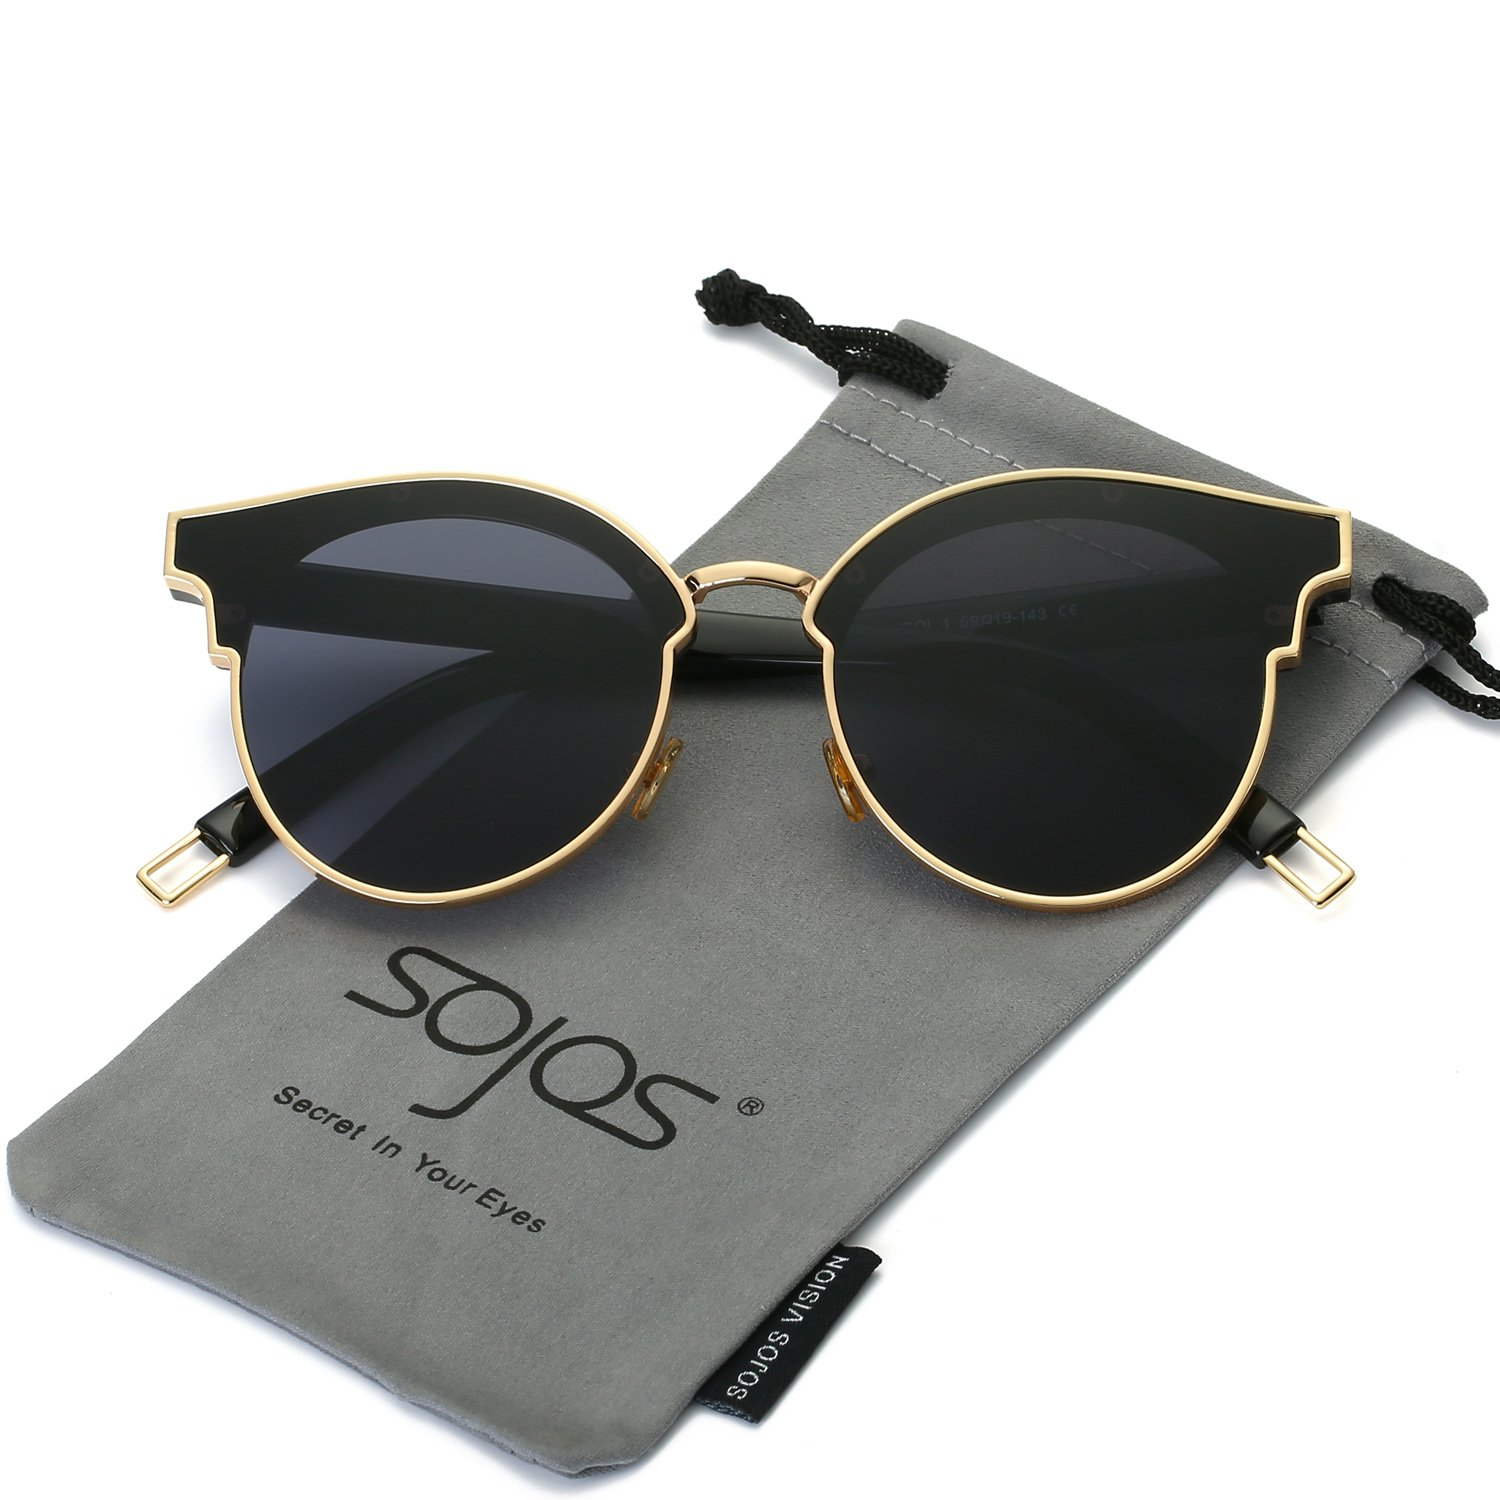 SOJOS Fashion Cateye Sunglasses for Women Oversized Flat Mirrored Lens SJ1055 with Thick Gold Frame/Grey Lens